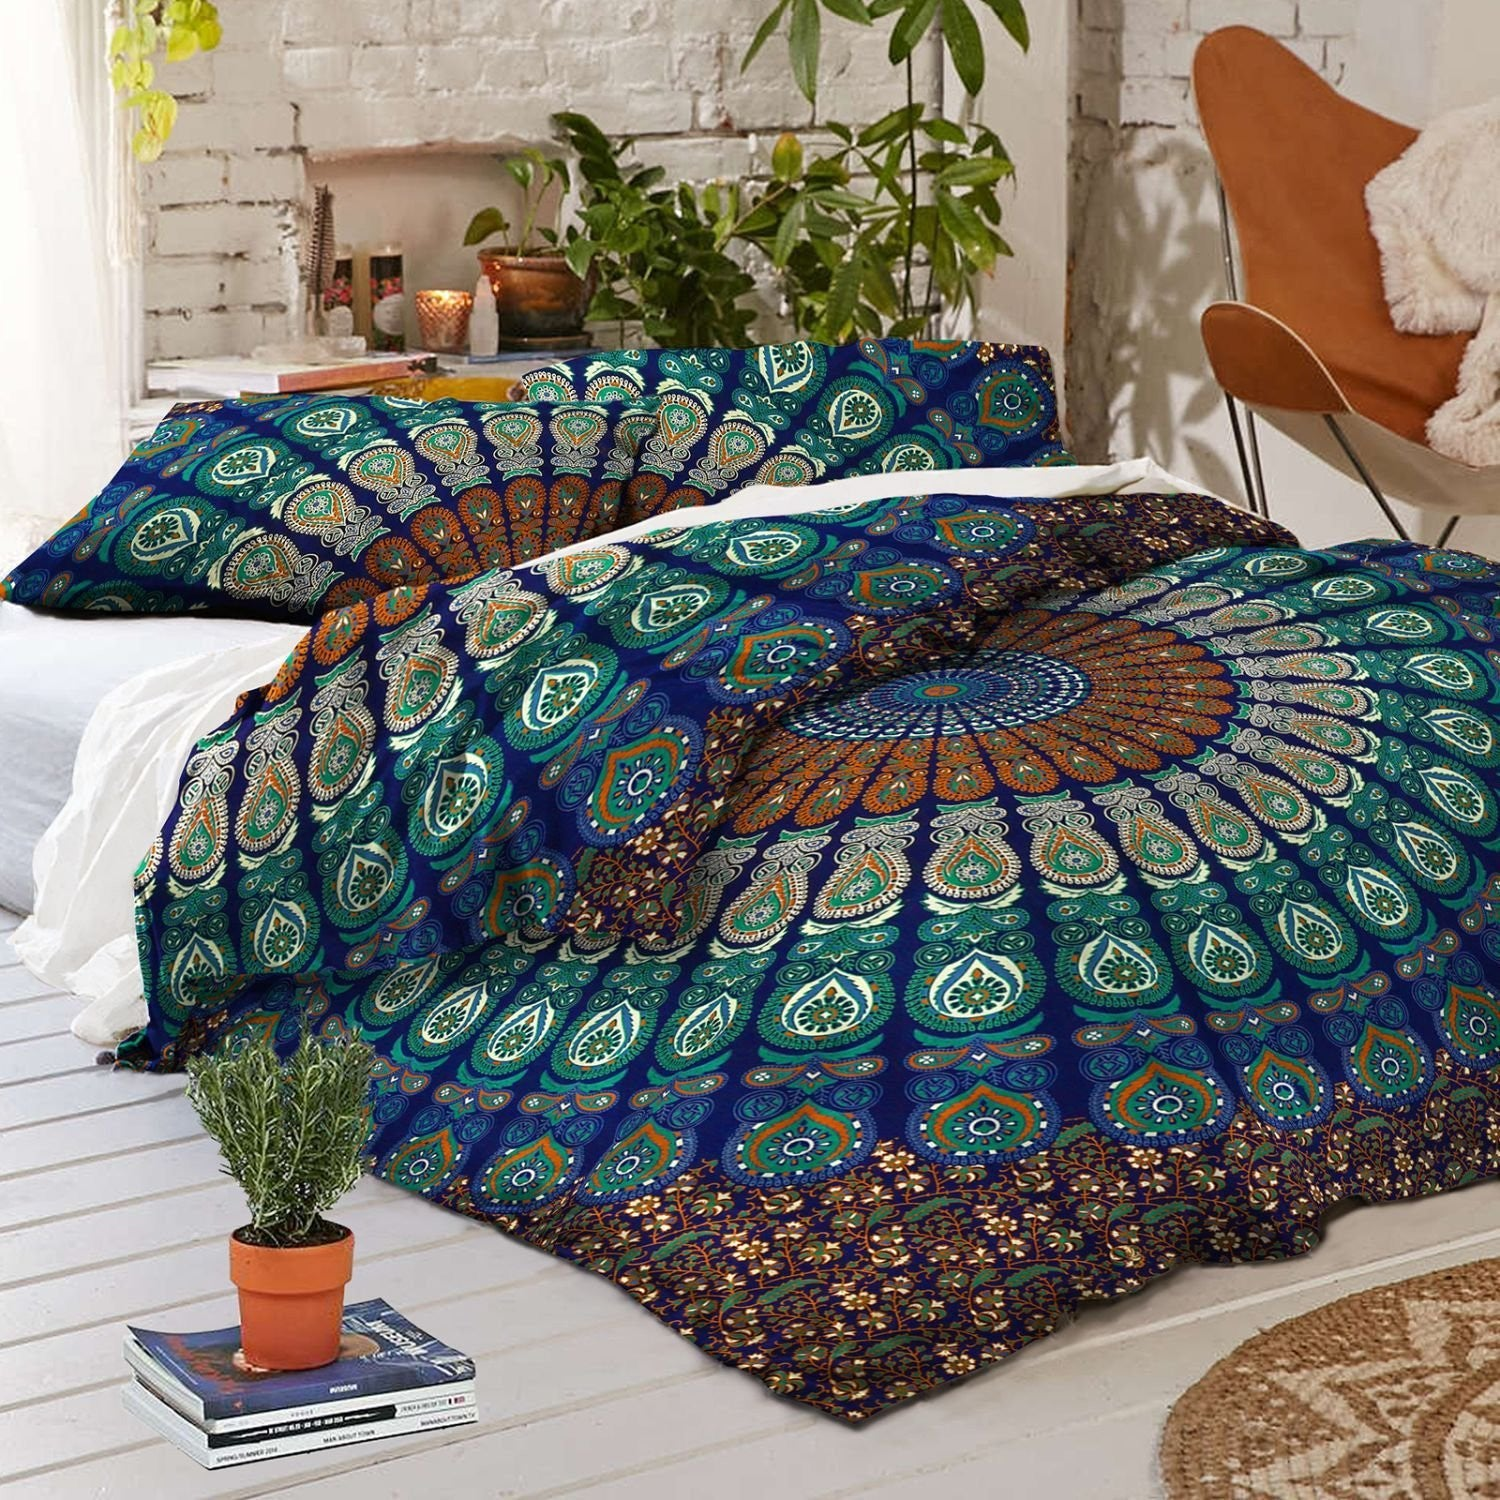 Labhanshi Exclusive Peacock Feather Mandala Queen Size Duvet Cover Omb : mandala quilt - Adamdwight.com